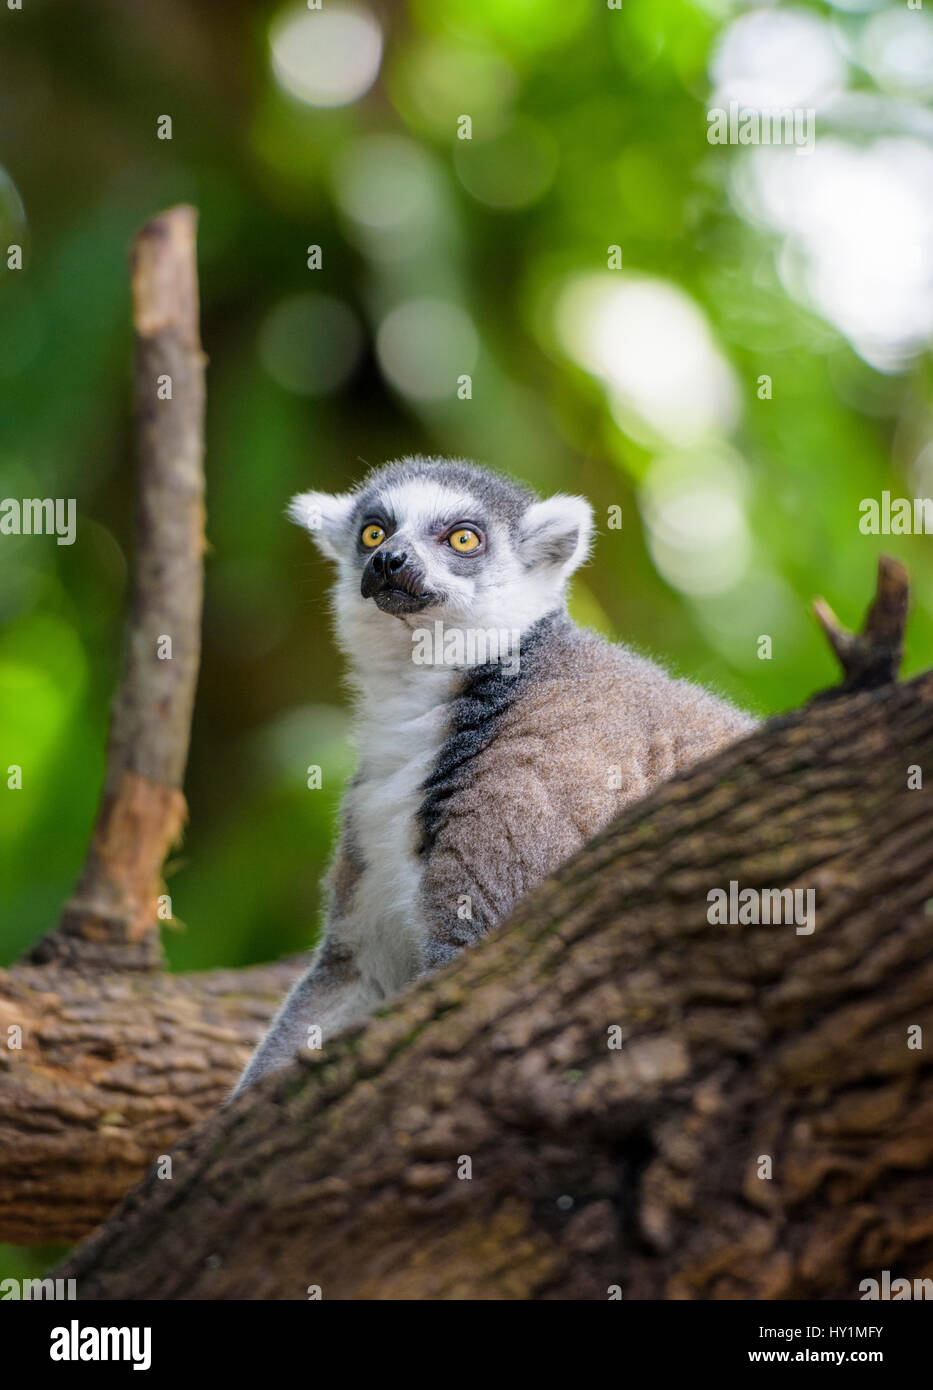 Ring-tailed lemur at Singapore Zoo, Singapore - Stock Image